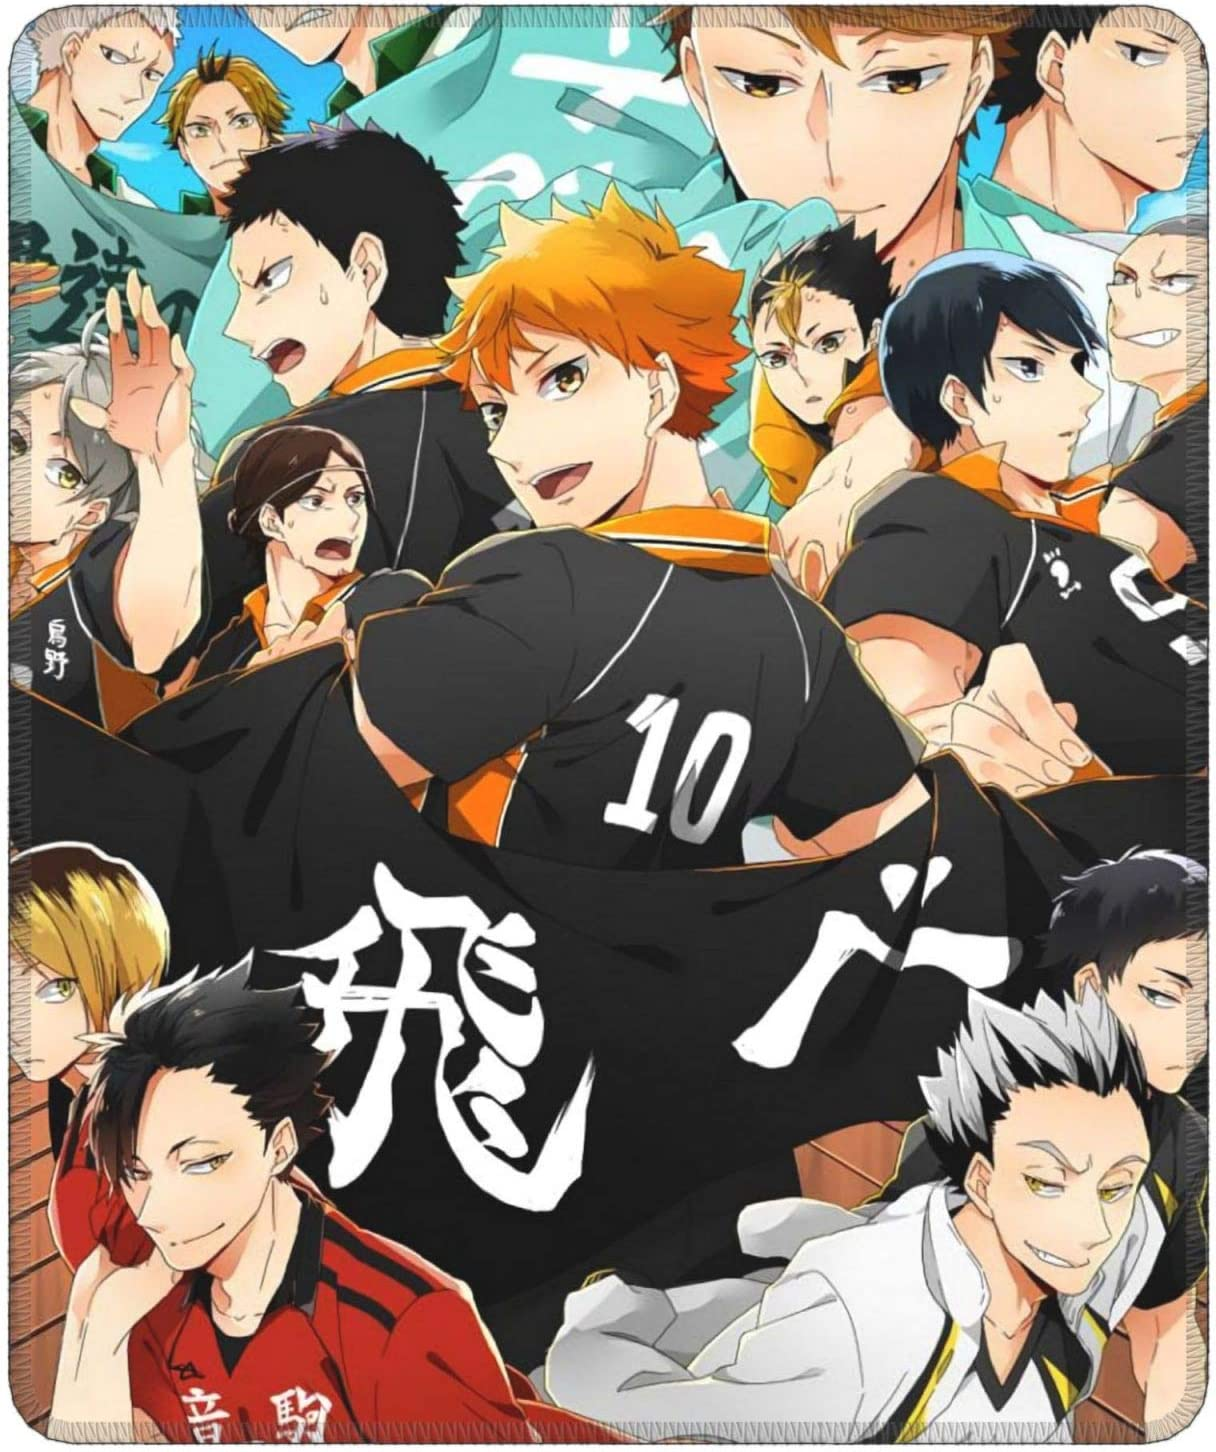 Haikyuu Mouse Pad Anime Non-Slip Mouse Pad Mat for Laptop Gaming Office 9.8x11.8 in